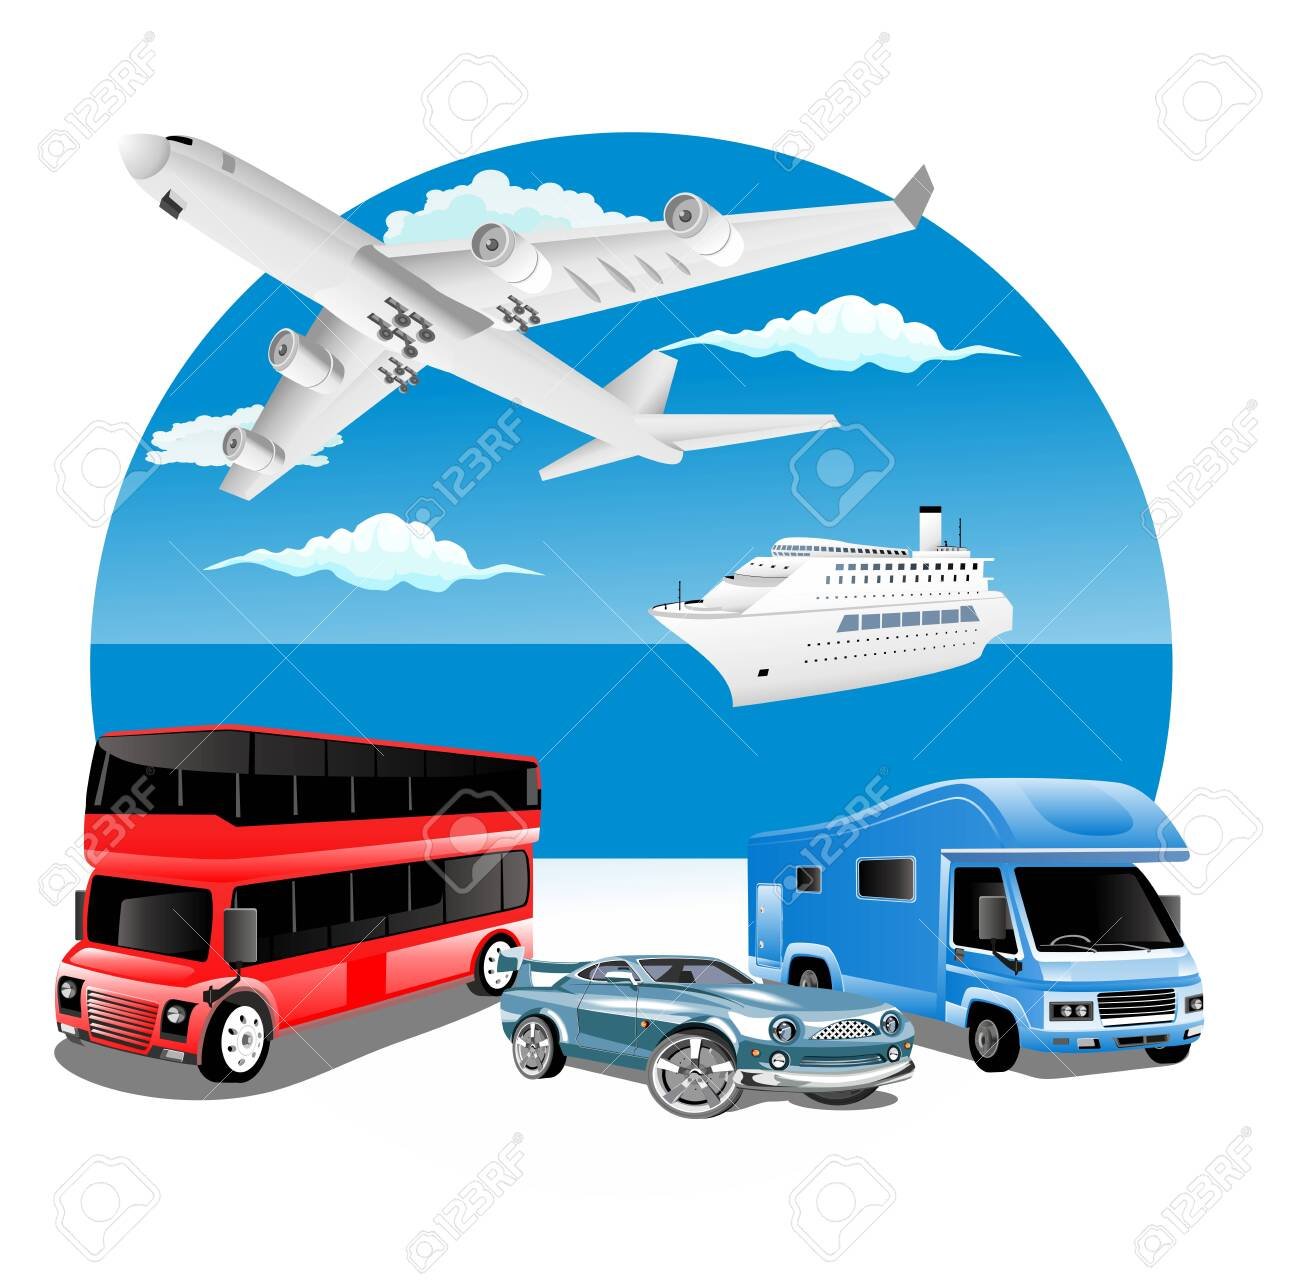 logistics business concept with delivery transport vehicles and ocean in background - 136785415